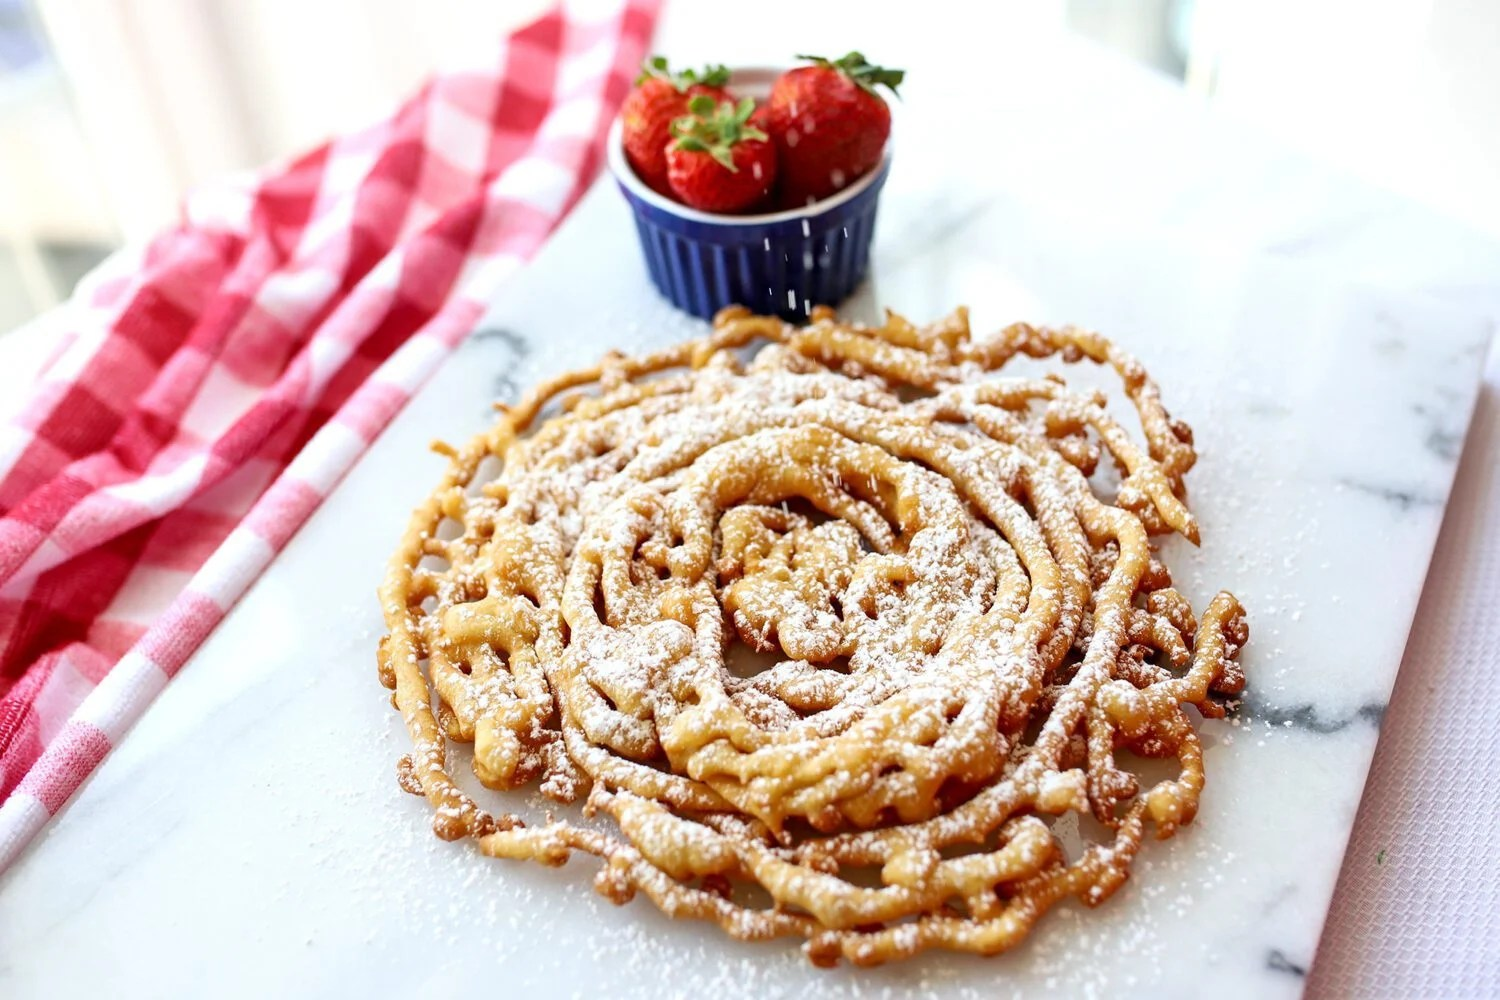 homemade funnel cake and a bowl of strawberries